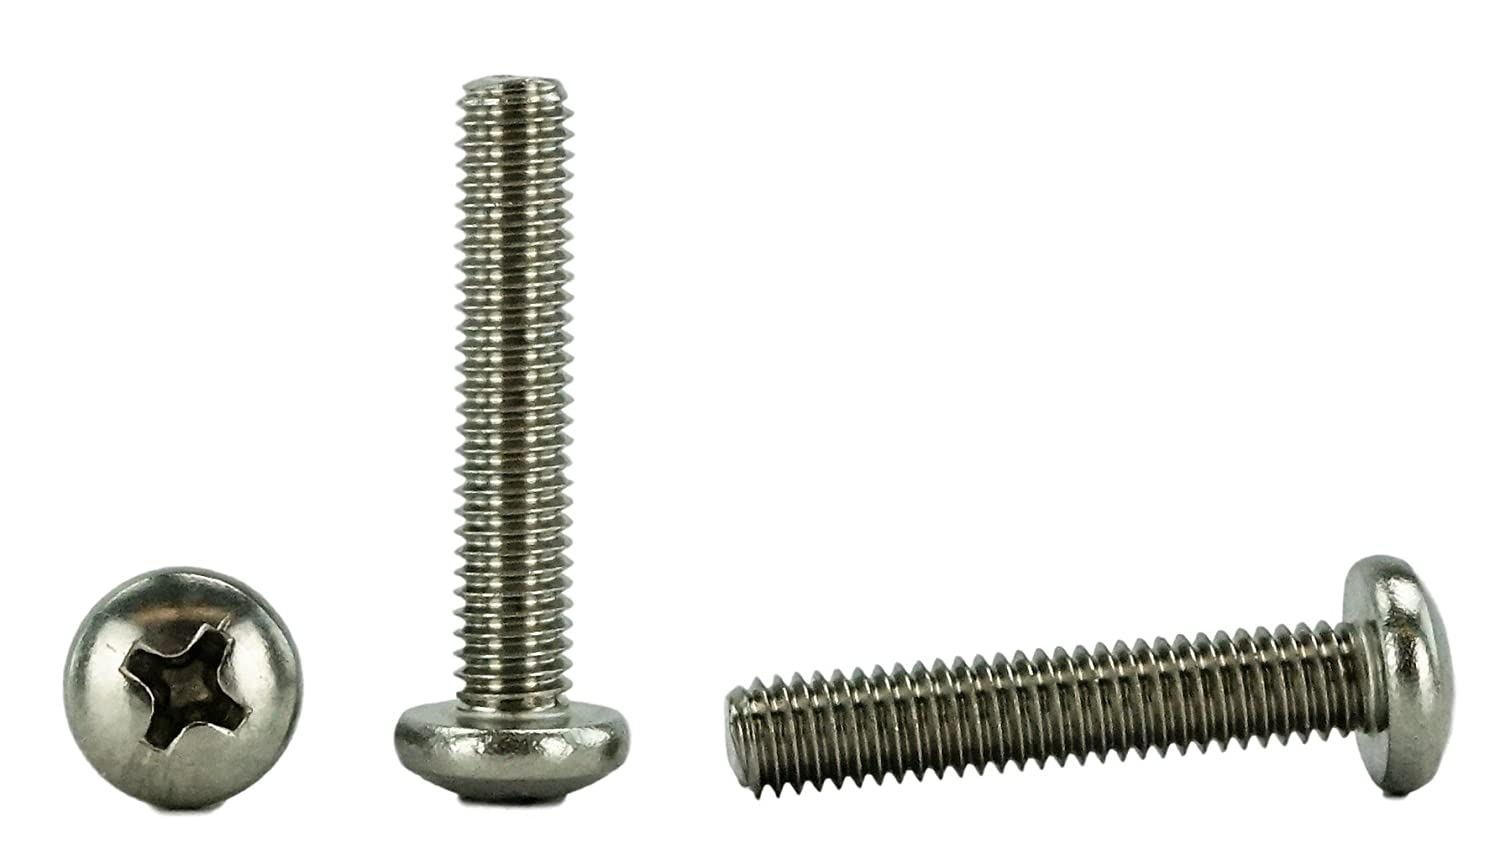 "Stainless 10-32 x 1 (1/2 to 3"" Lengths Available) Pan Head Machine Screws, Full Thread, Phillips Drive, Stainless Steel 18-8, Machine Thread (100, 10-32 x 1)"